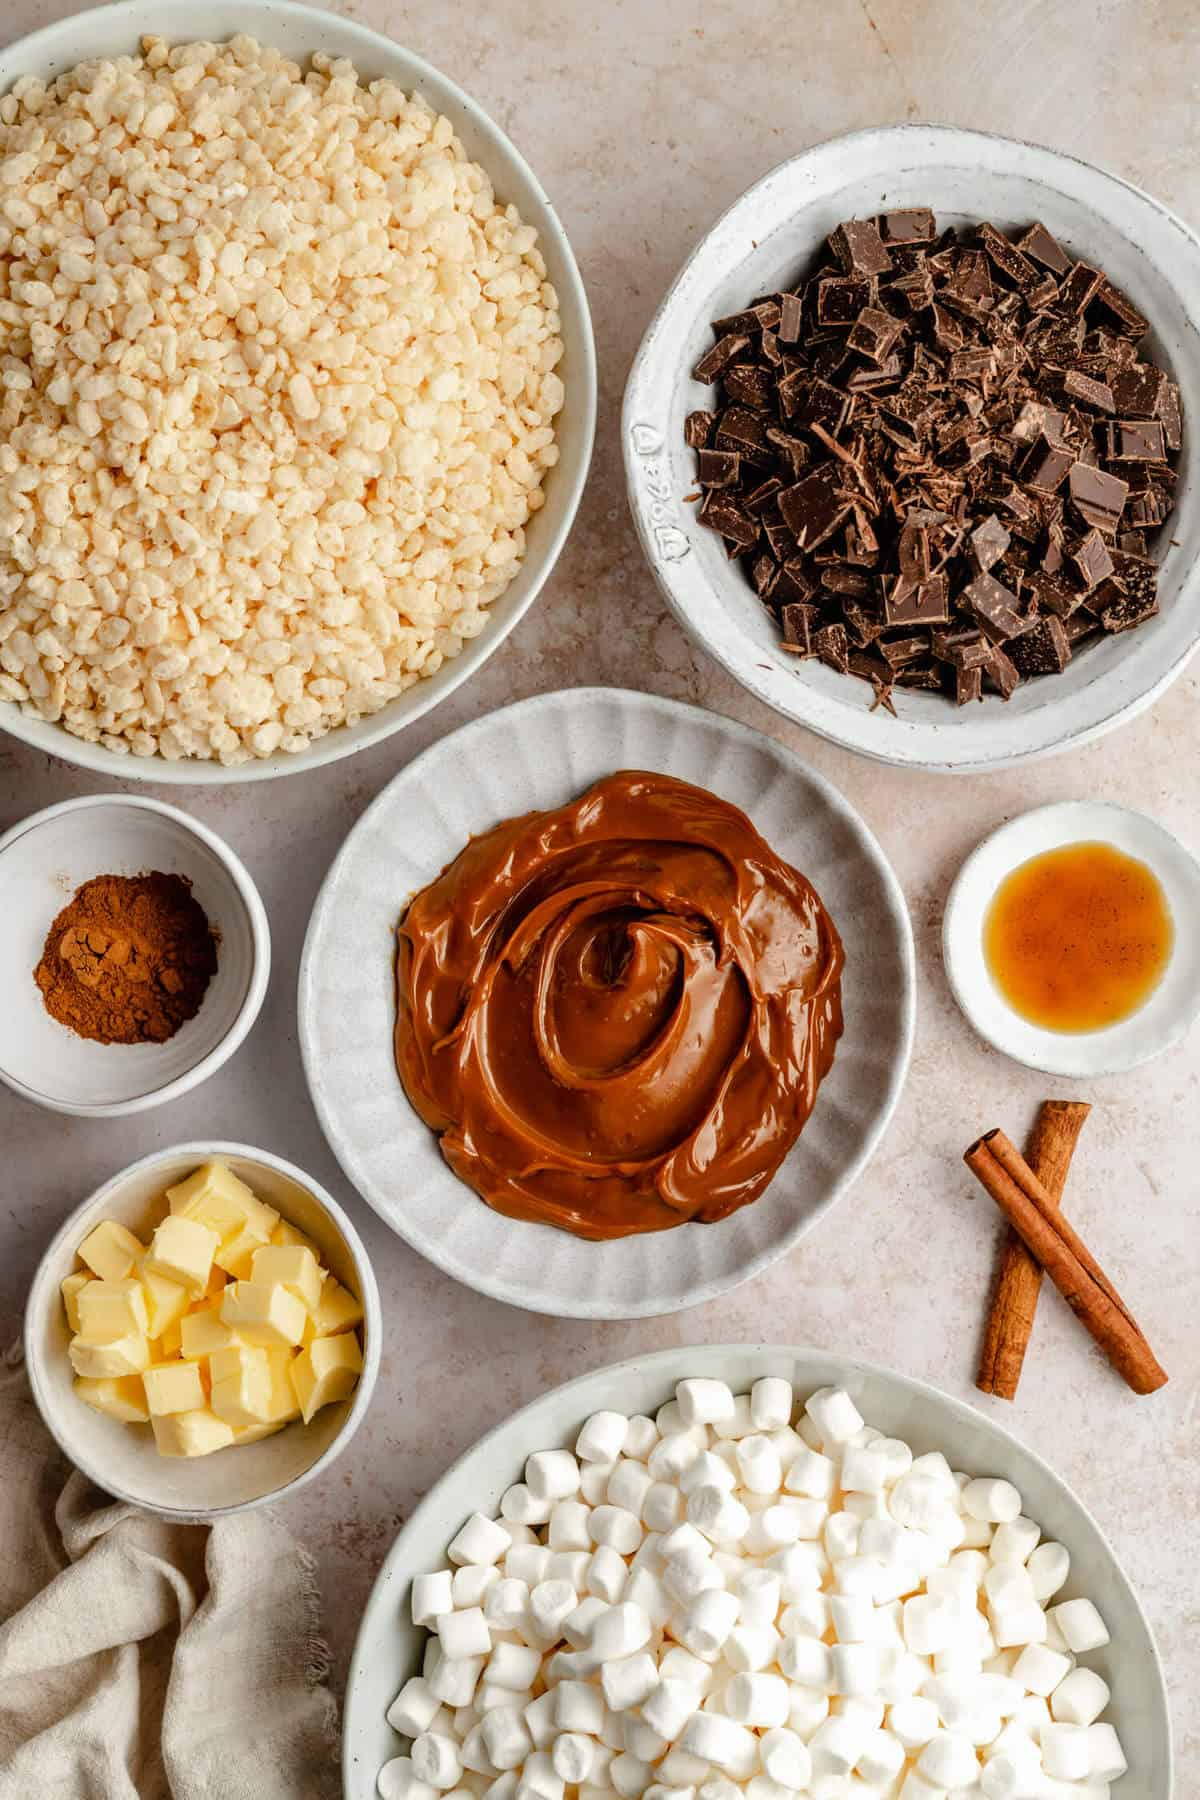 Various bowls of ingredients photo, rice krispies, chopped chocolate, ground cinnamon, dulce de leche, vanilla extract, butter, marshmallows